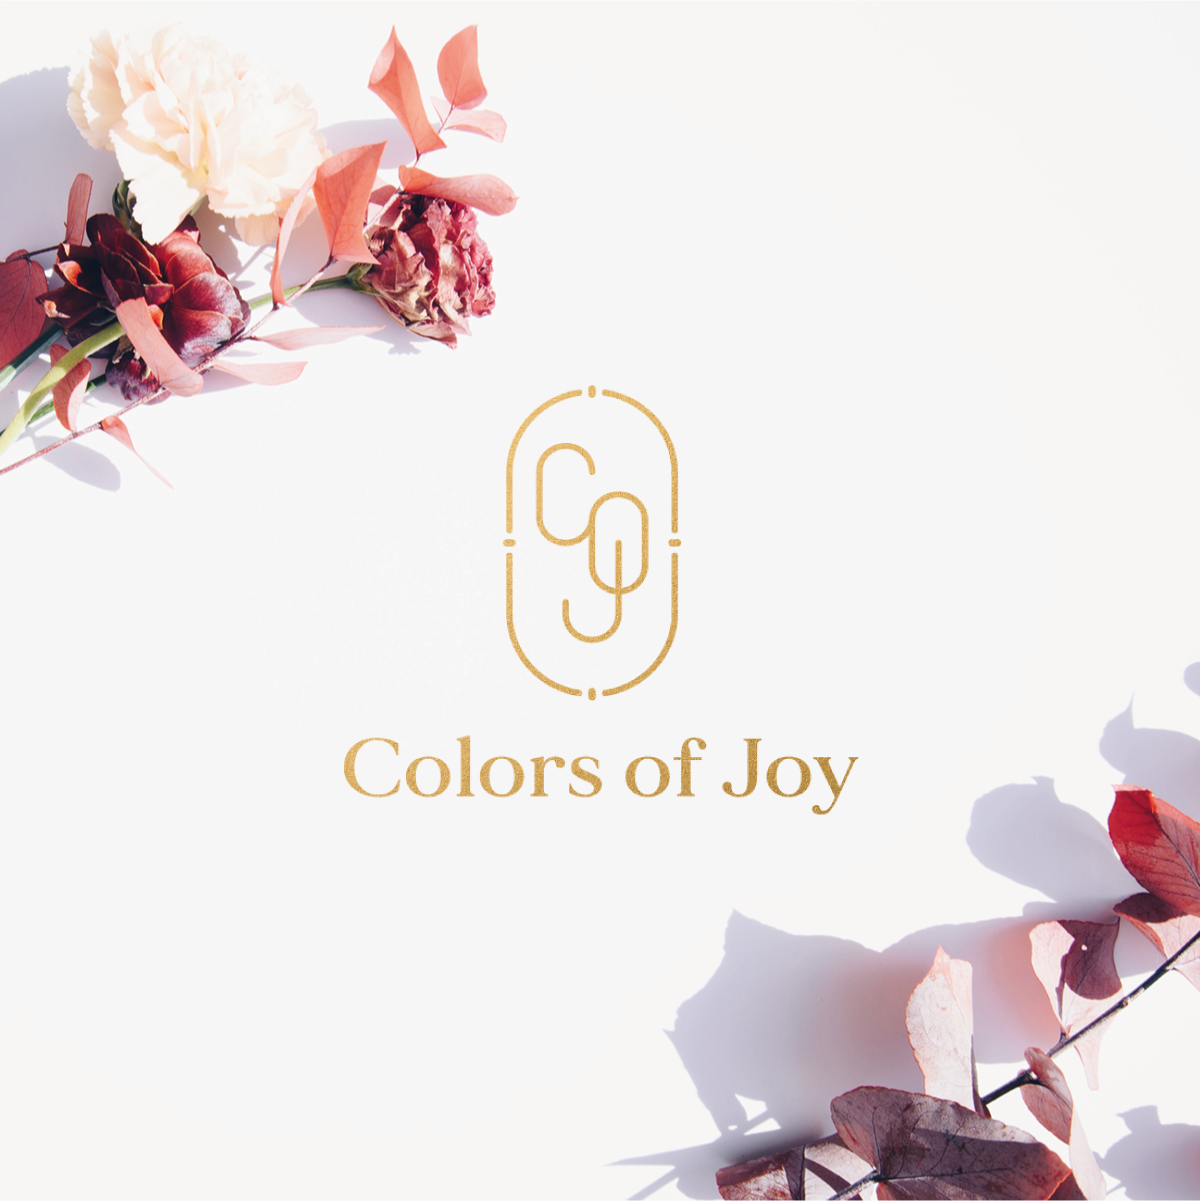 Colors of Joy logo